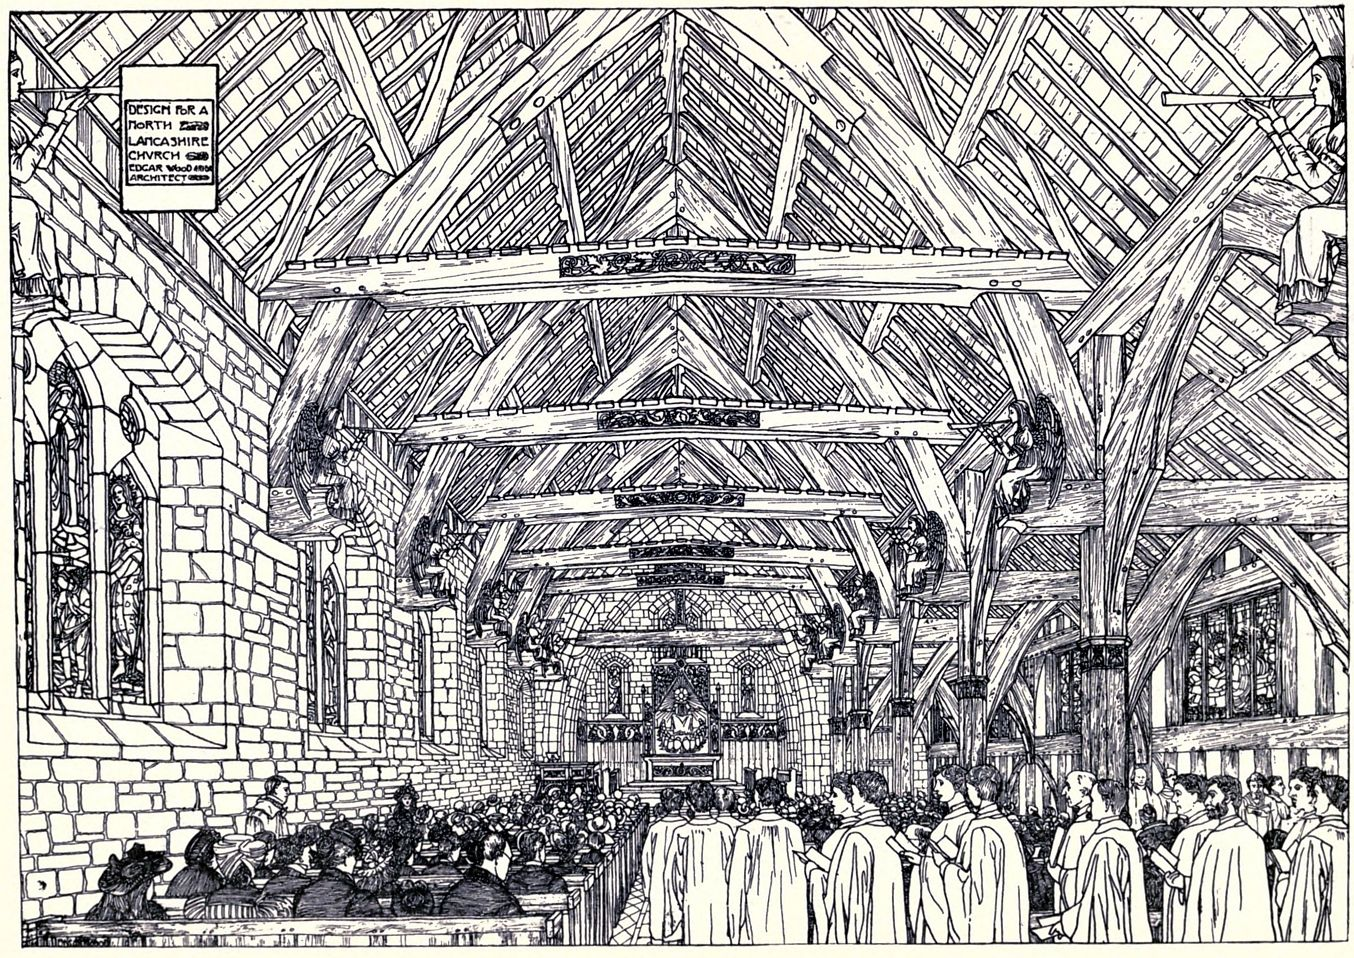 This is a design for a country church in North Lancashire.  Edgar Wood uses the beams and crucks found in old barns to give a real country flavour to the interior.  The drawing is great fun and it's a shame it was never built.